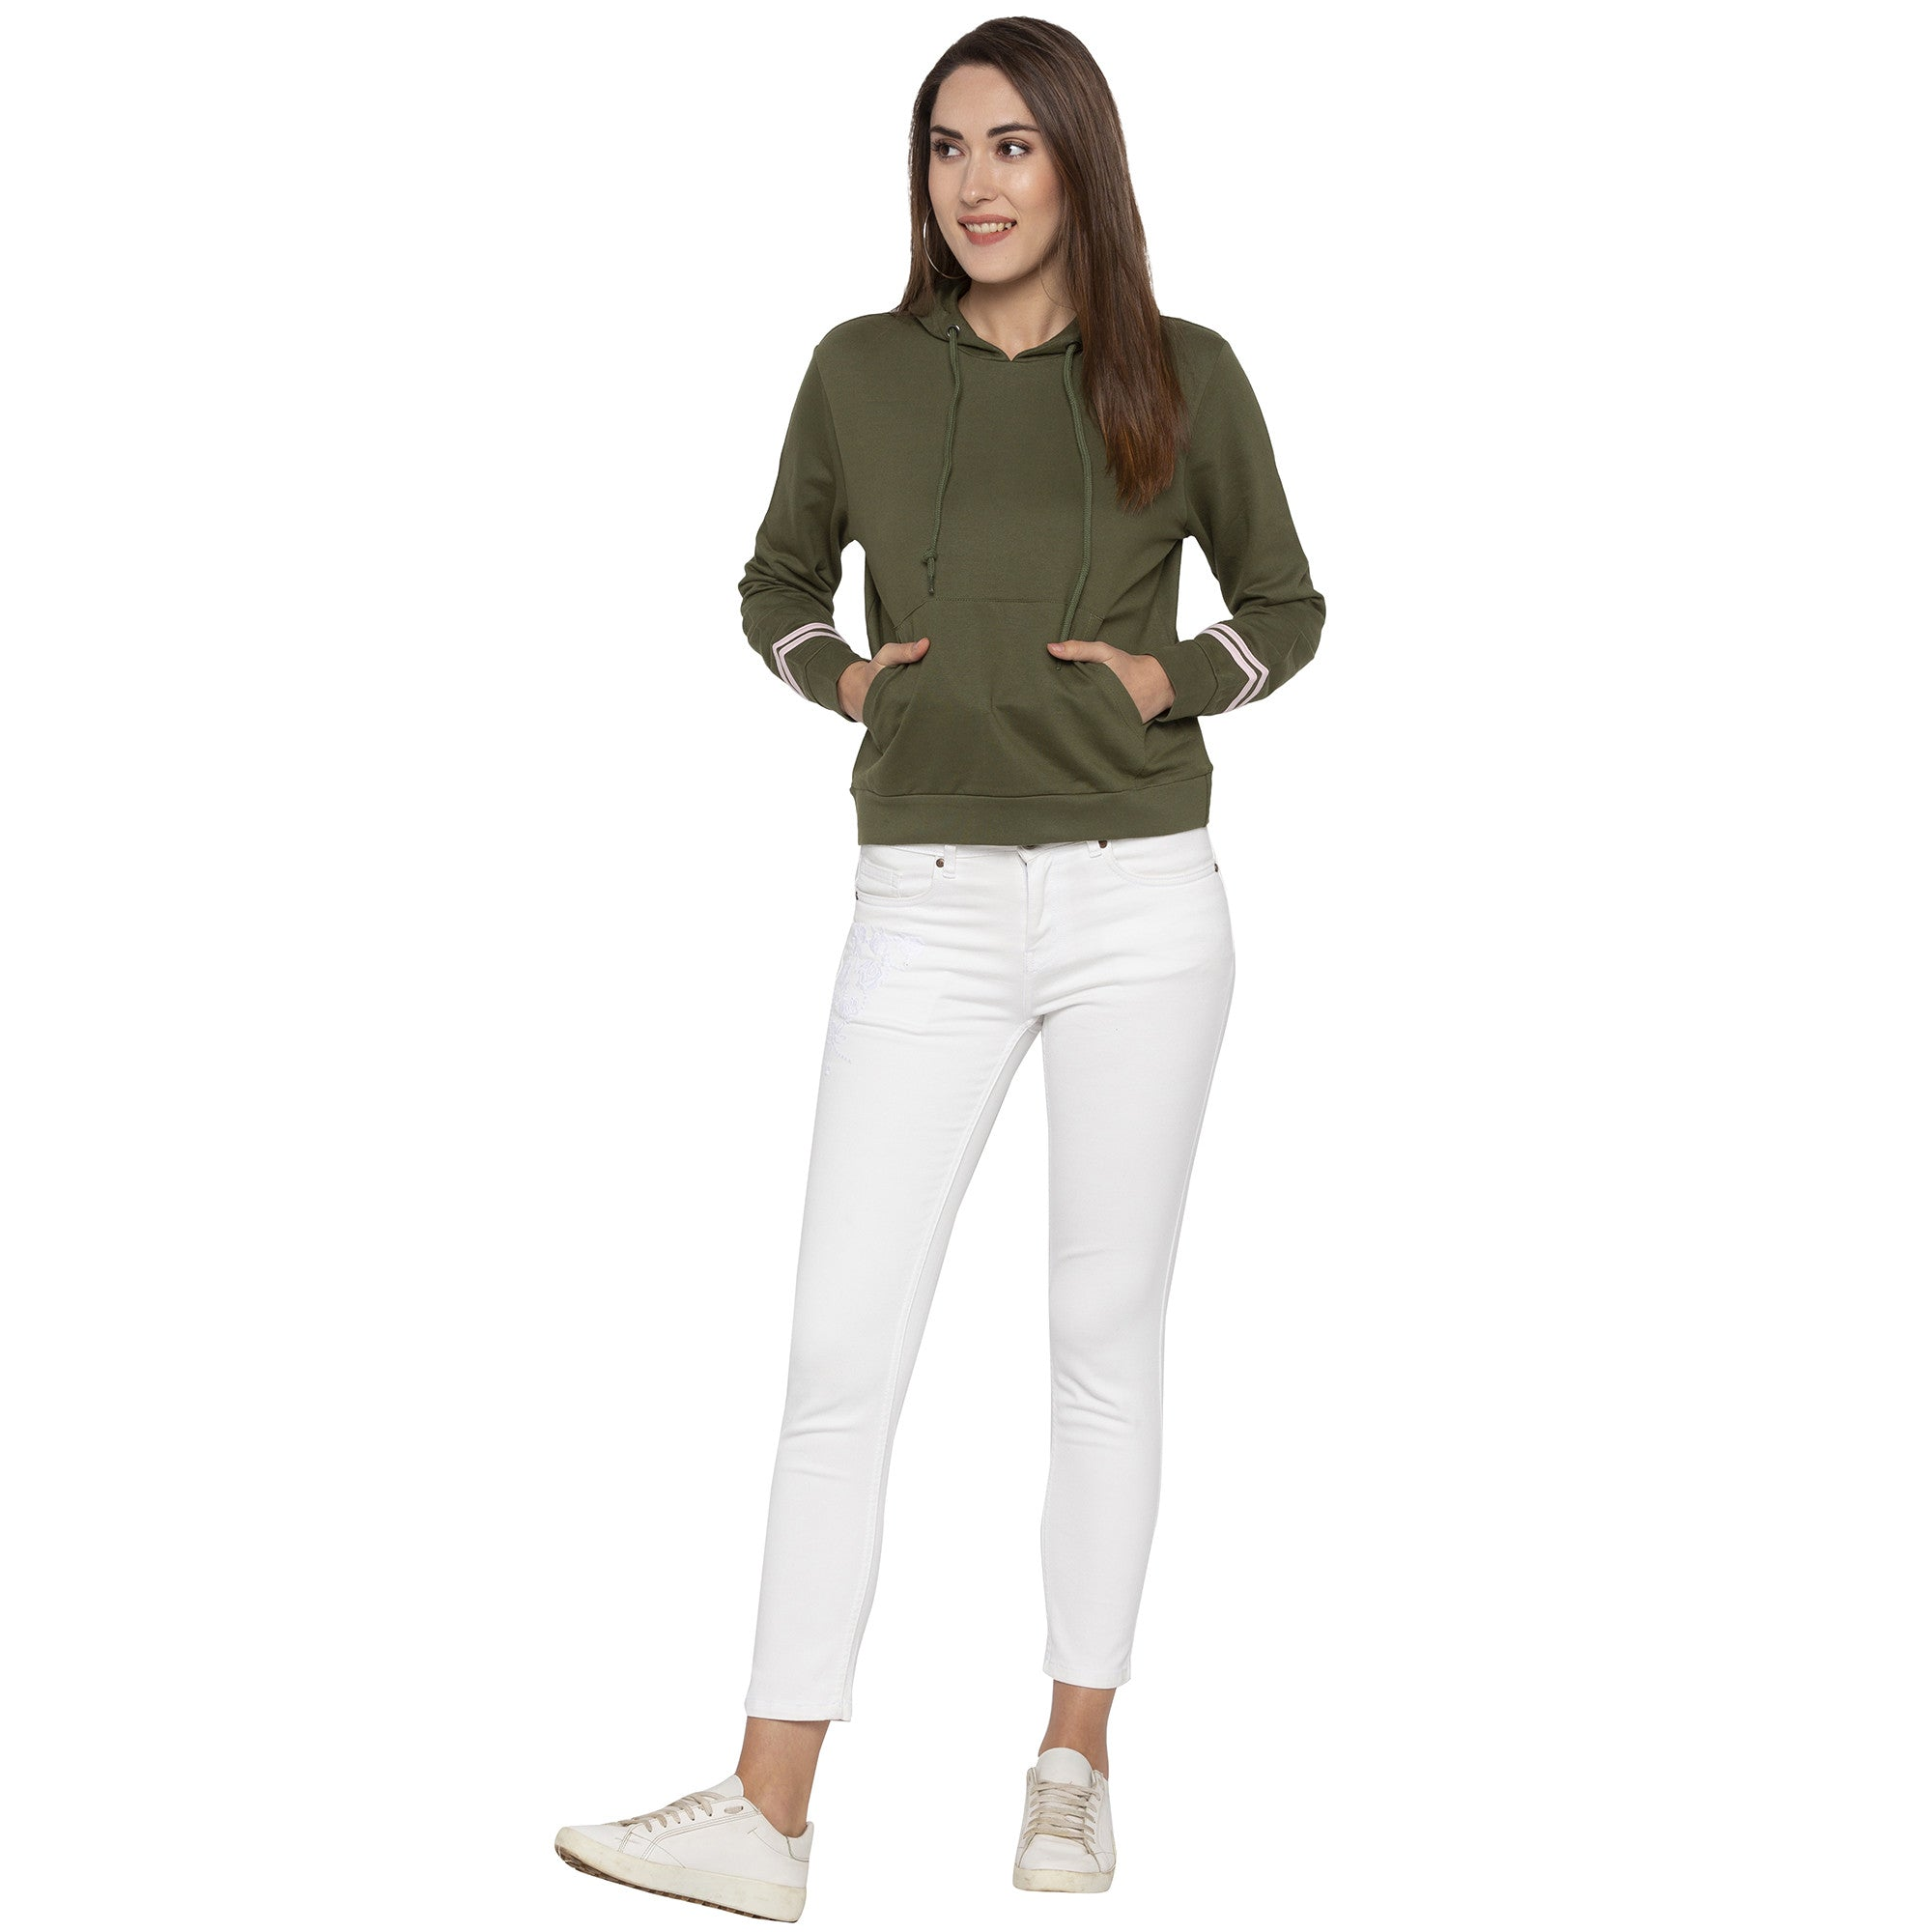 Casual Olive Color Solid Hooded Sweatshirt-4